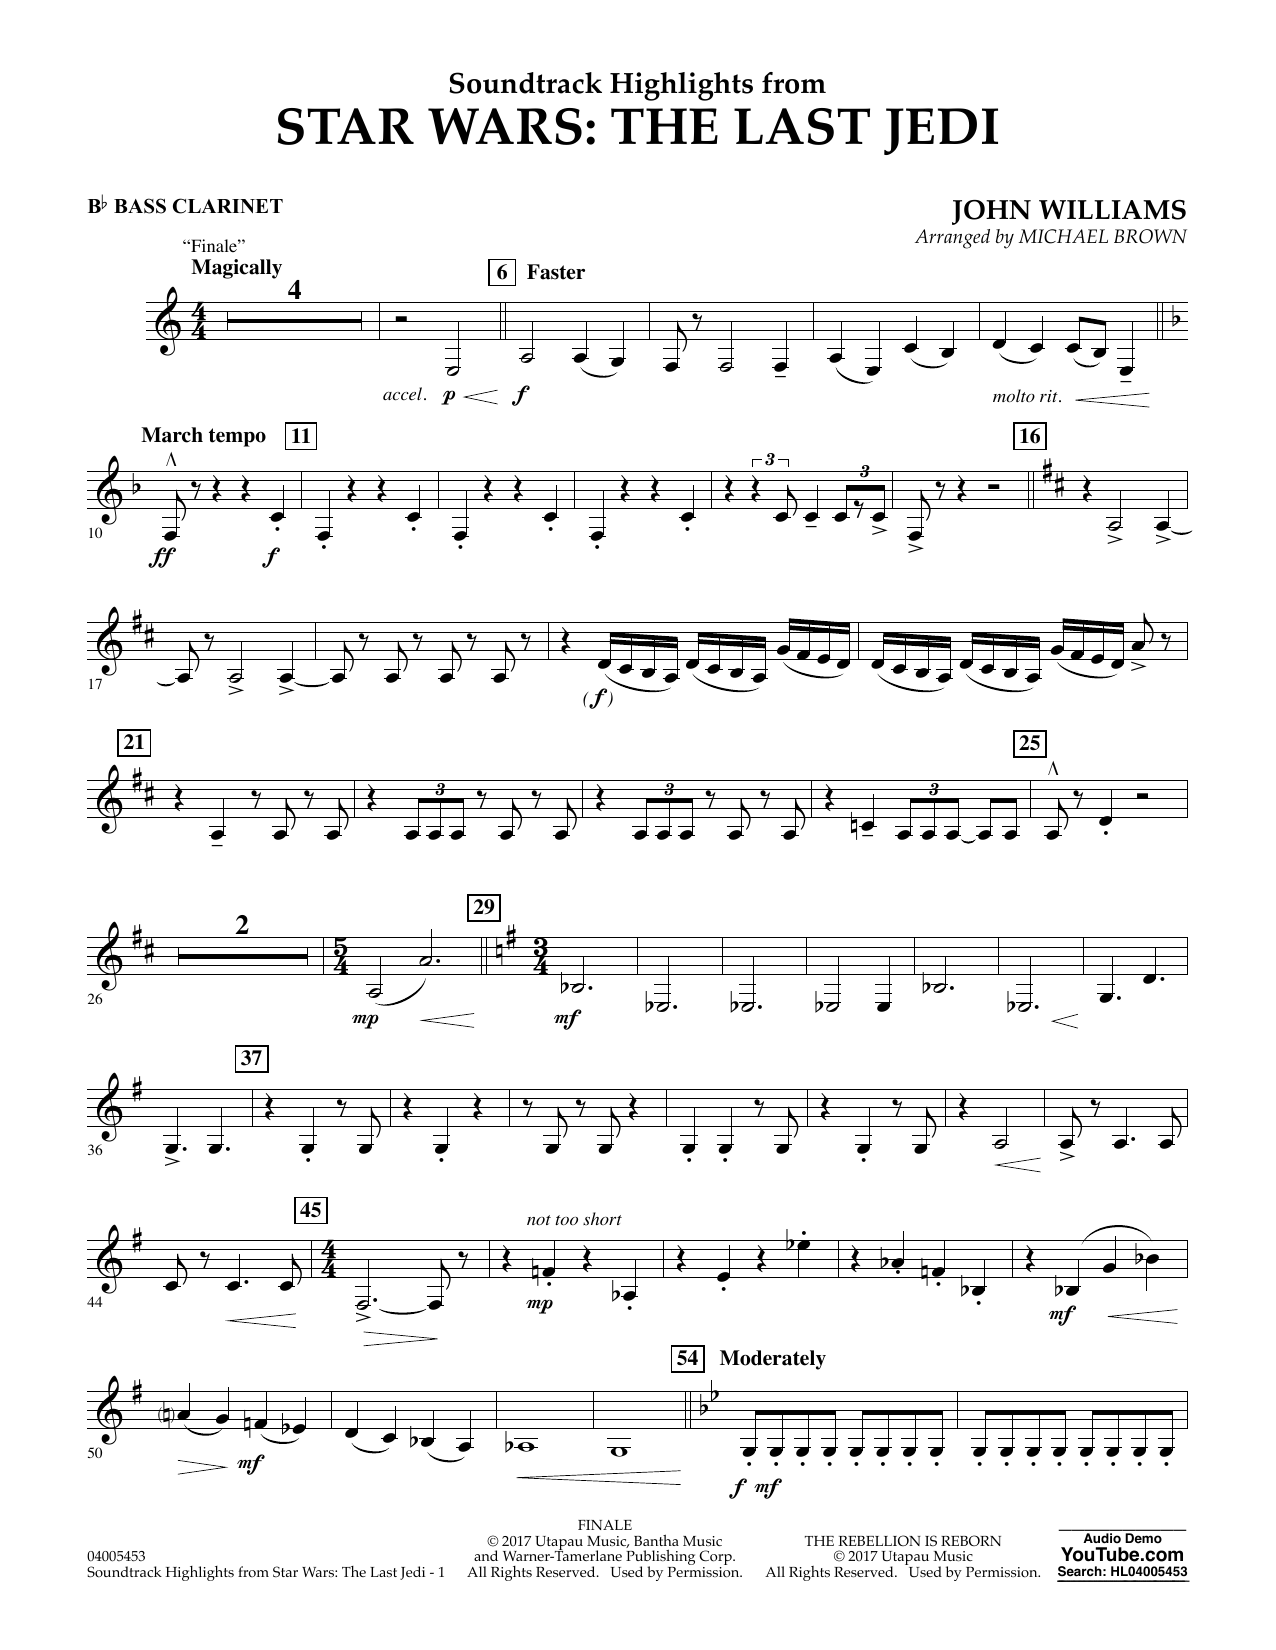 Michael Brown Soundtrack Highlights from Star Wars: The Last Jedi - Bb Bass Clarinet sheet music notes and chords. Download Printable PDF.